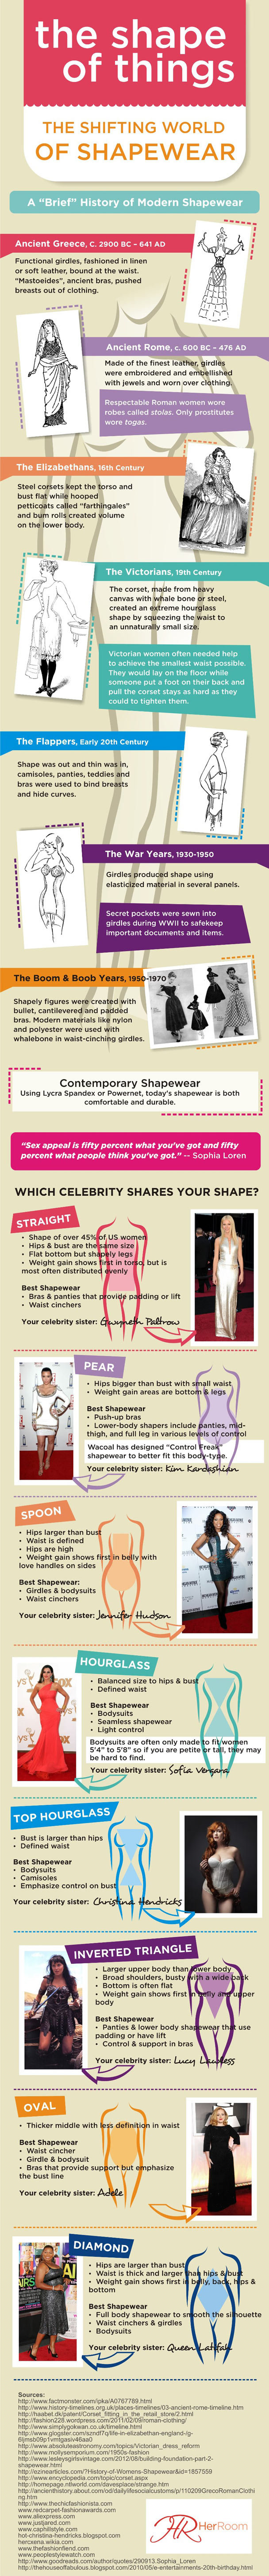 Which Celebrity shares your body shape? #Infographic